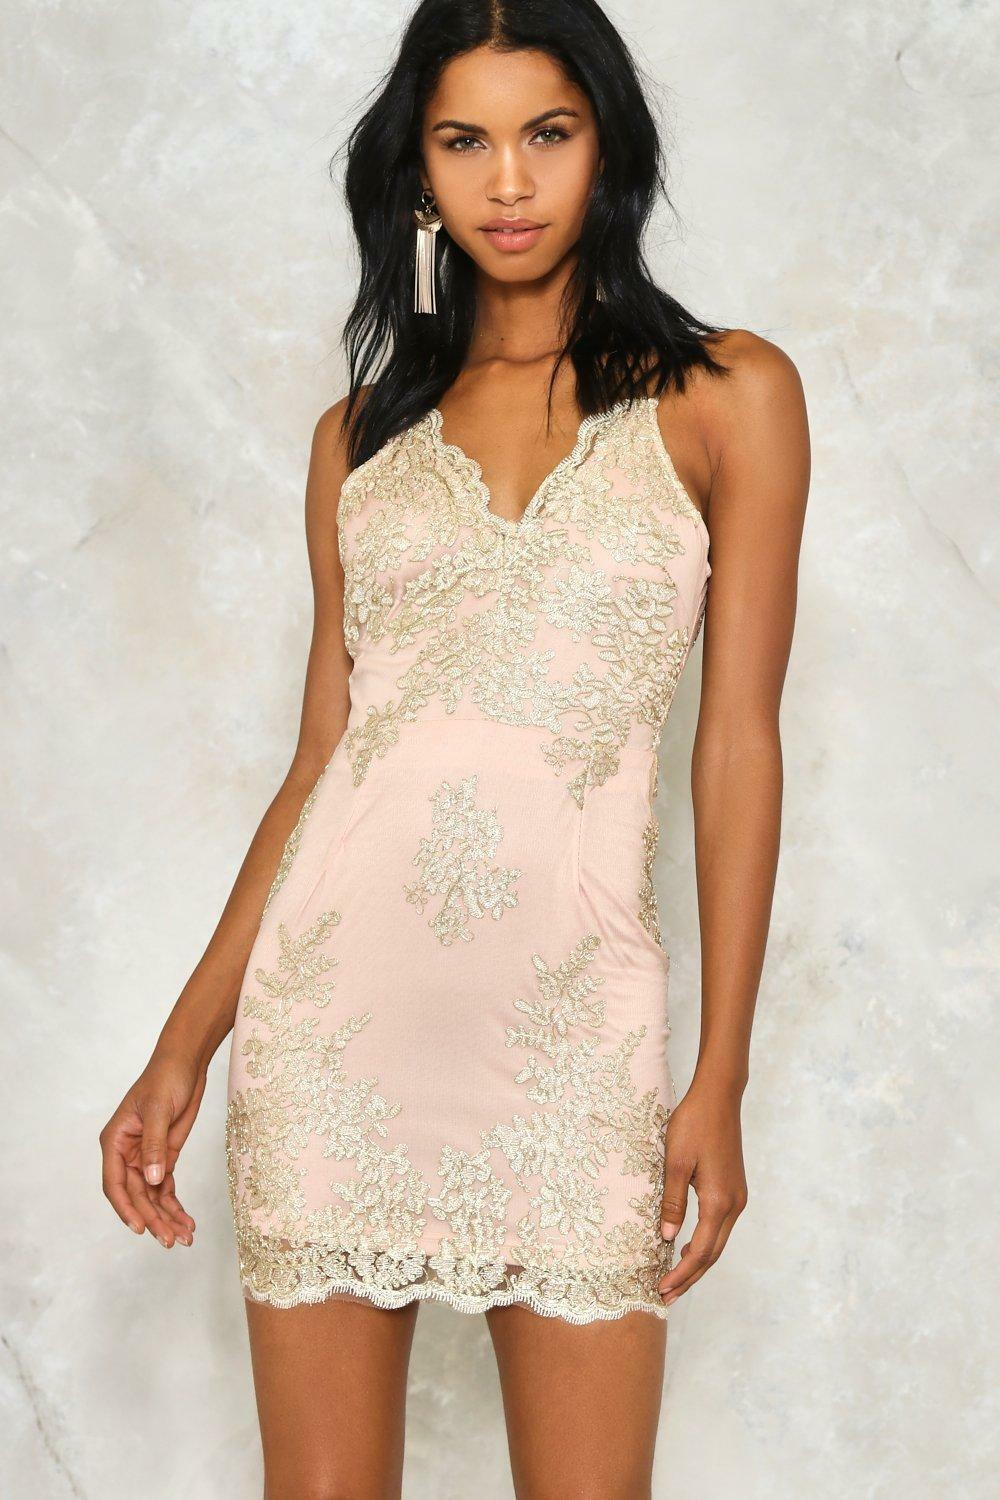 Hot to Tred Metallic Lace Dress Nasty Gal Size M